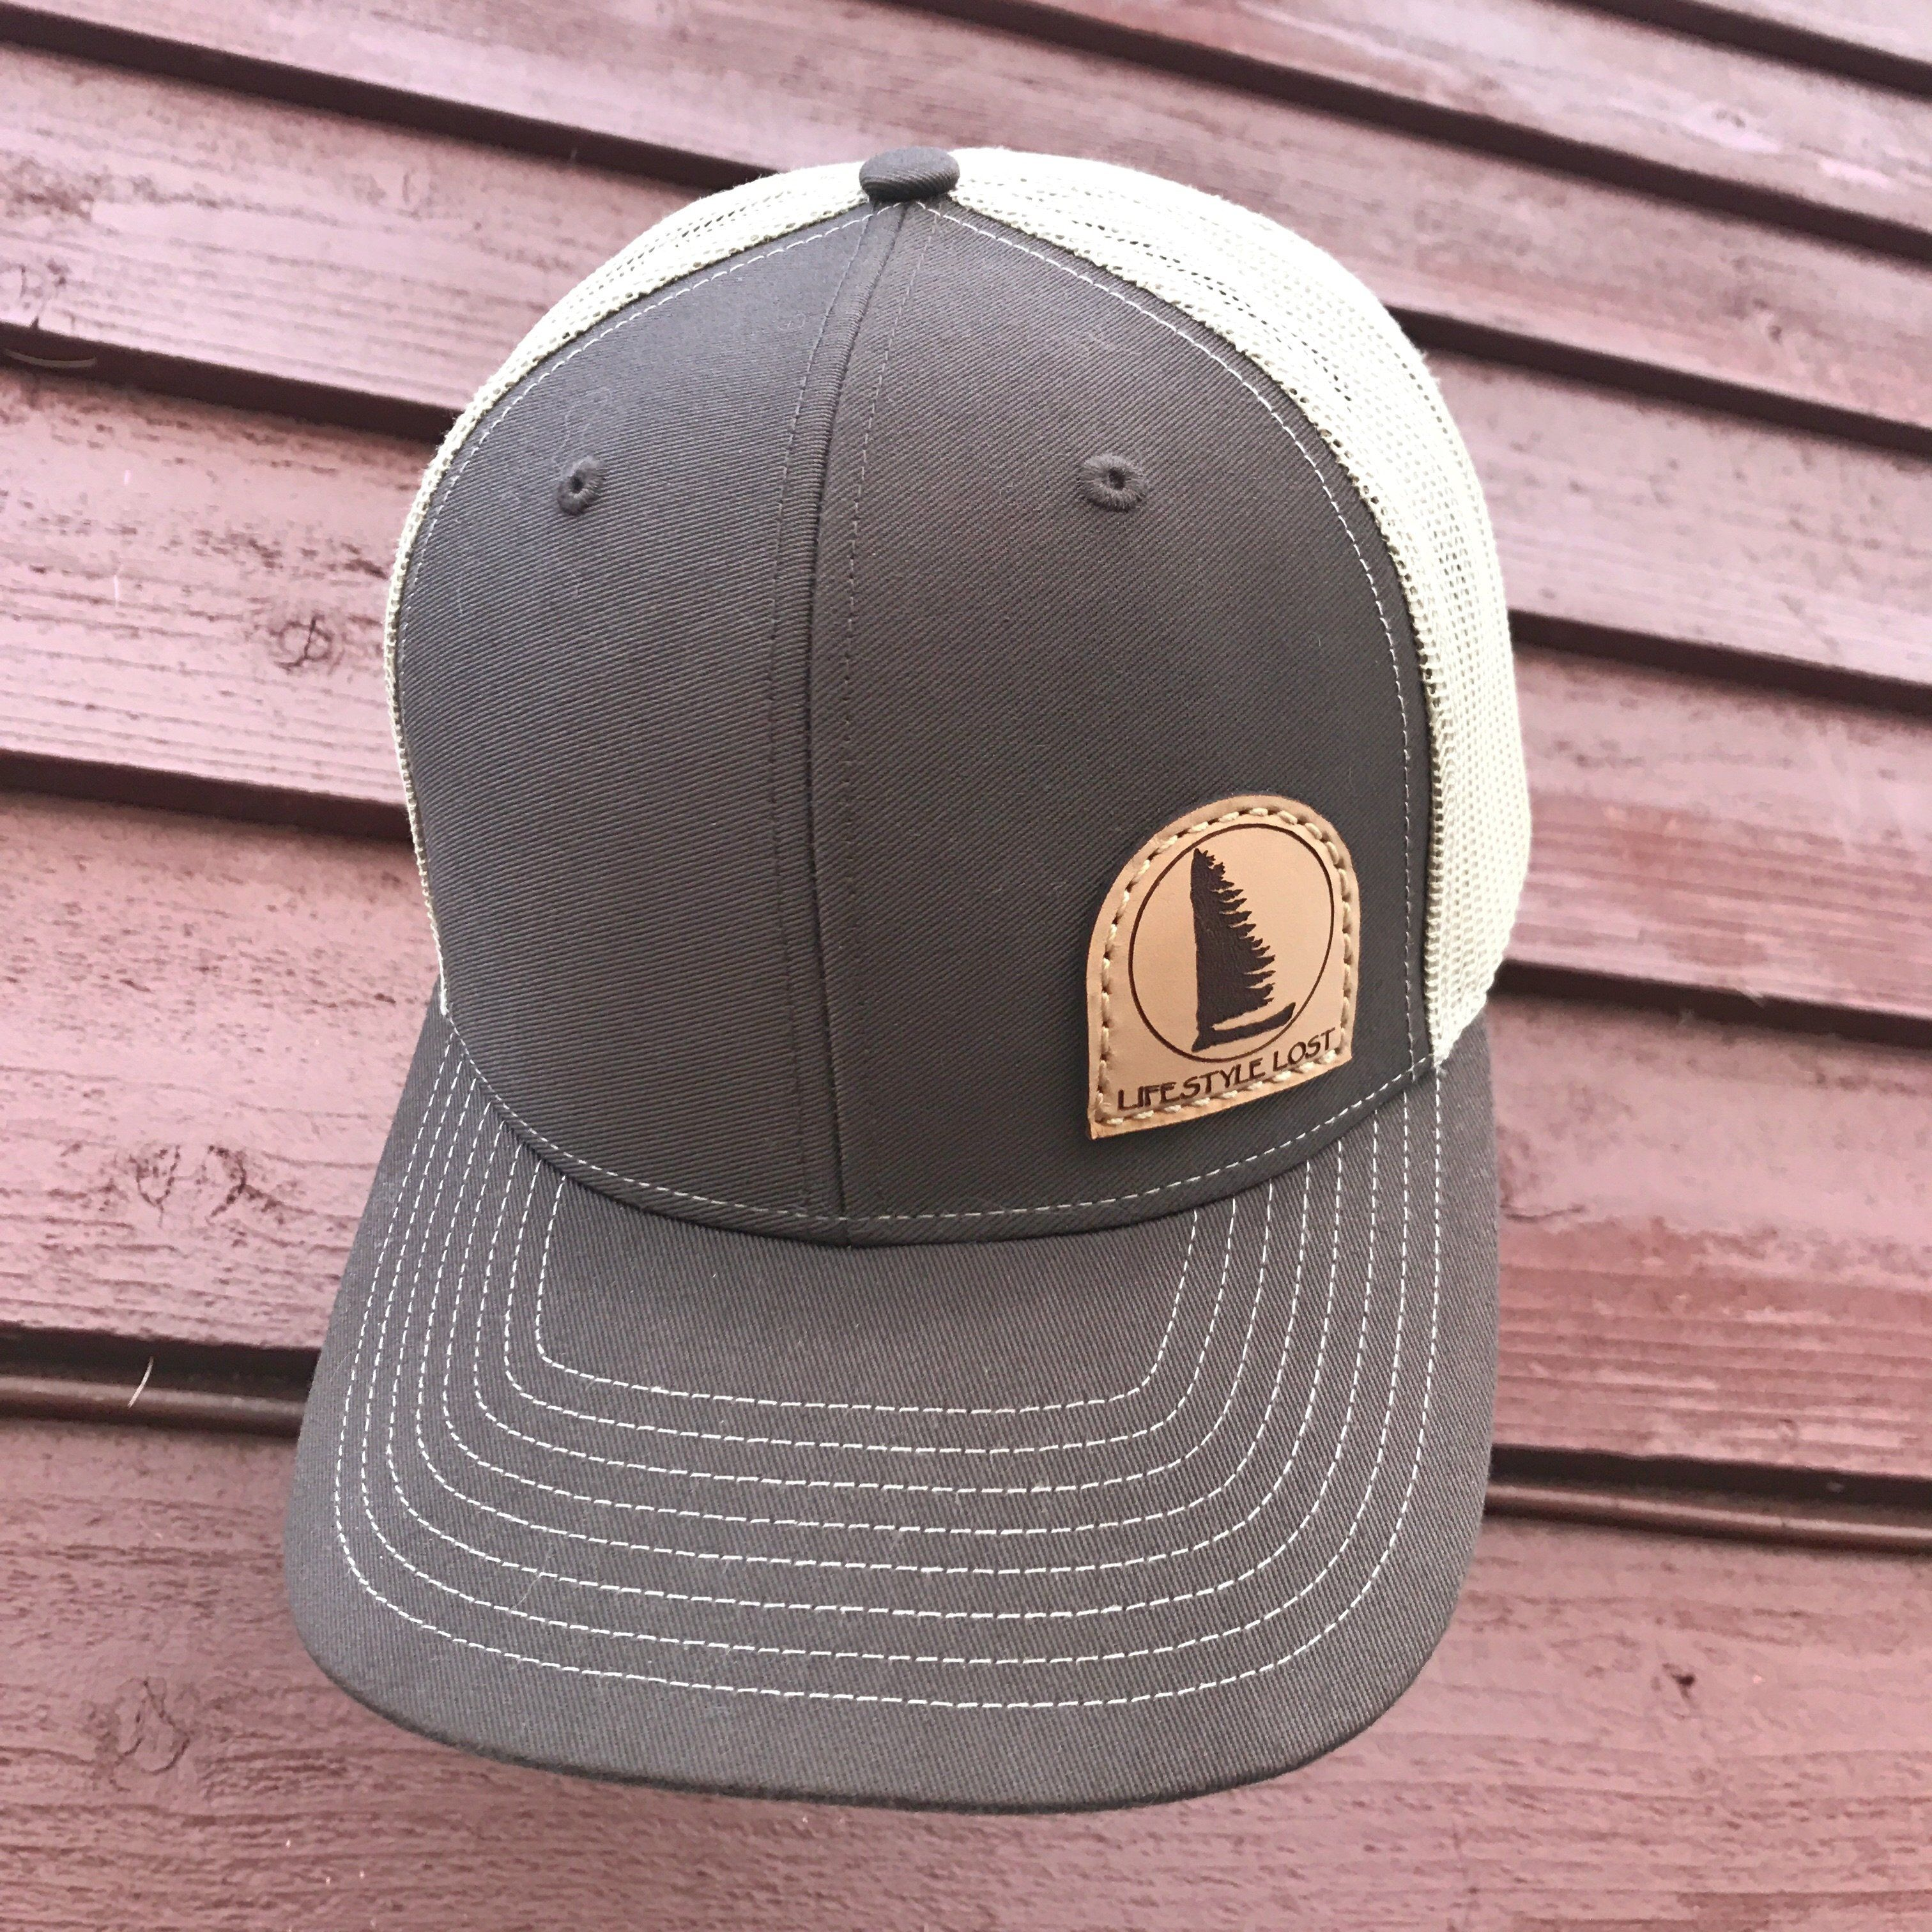 979d3378ccb Hats will be first come first serve as orders come in     Snap back mesh  style hat with genuine leather patch. 100% off profits go back to  conservation!